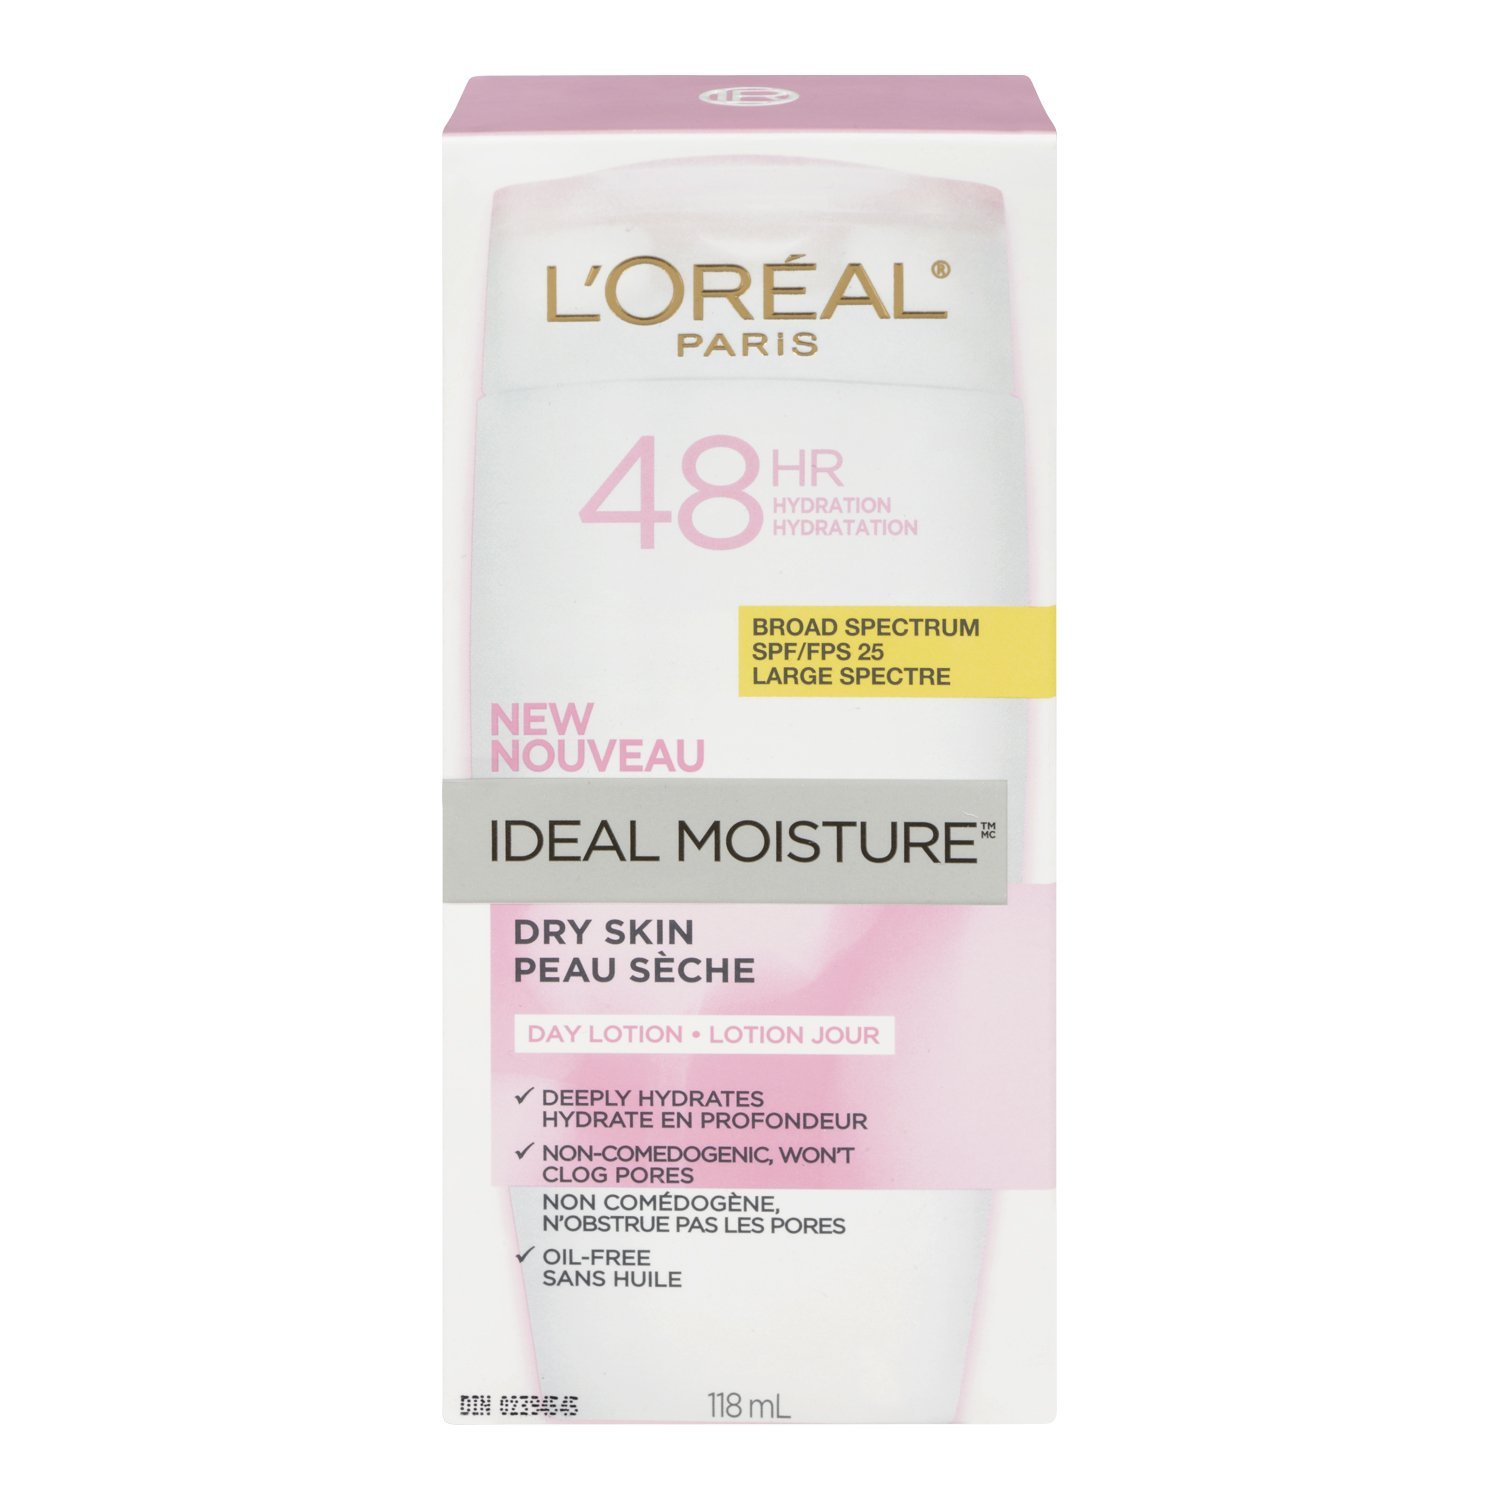 L'Oreal Paris Ideal Moisture SPF25 Day Lotion, 118-Milliliter (10064574) L' Oreal Paris K13224